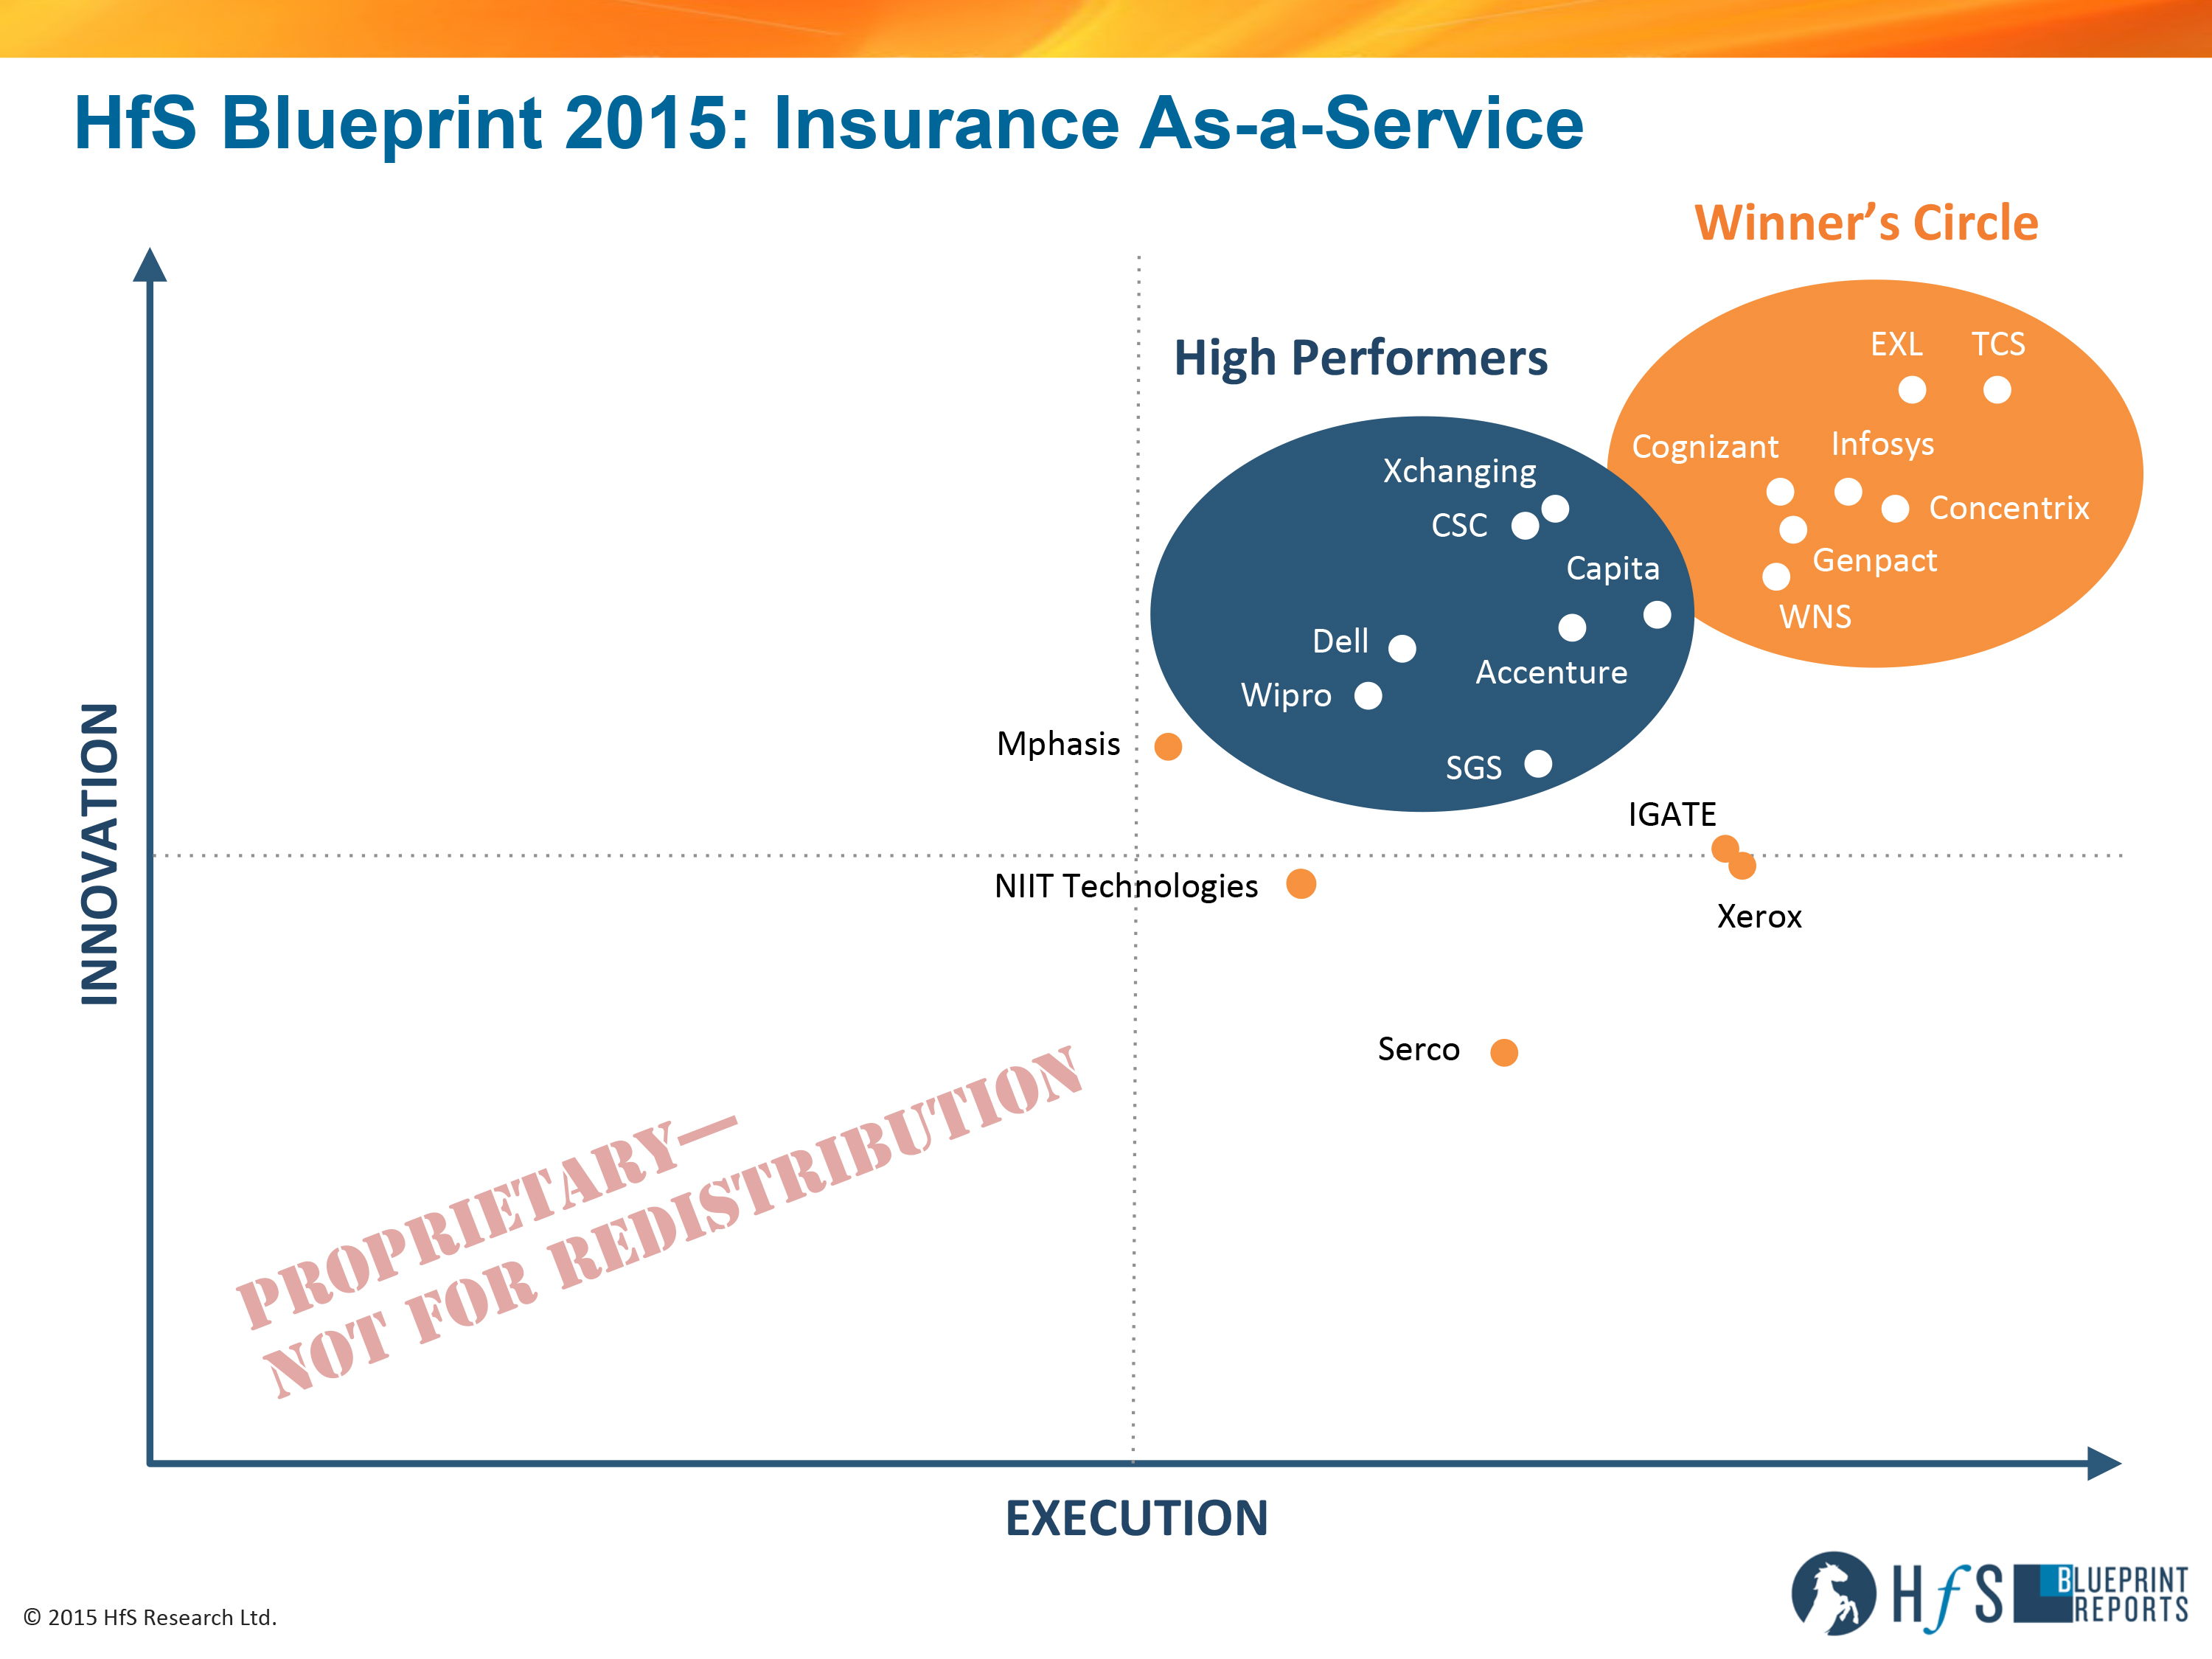 Tcs exl concentrix and infosys set the as a service pace for hfs blueprint report insurance as a service malvernweather